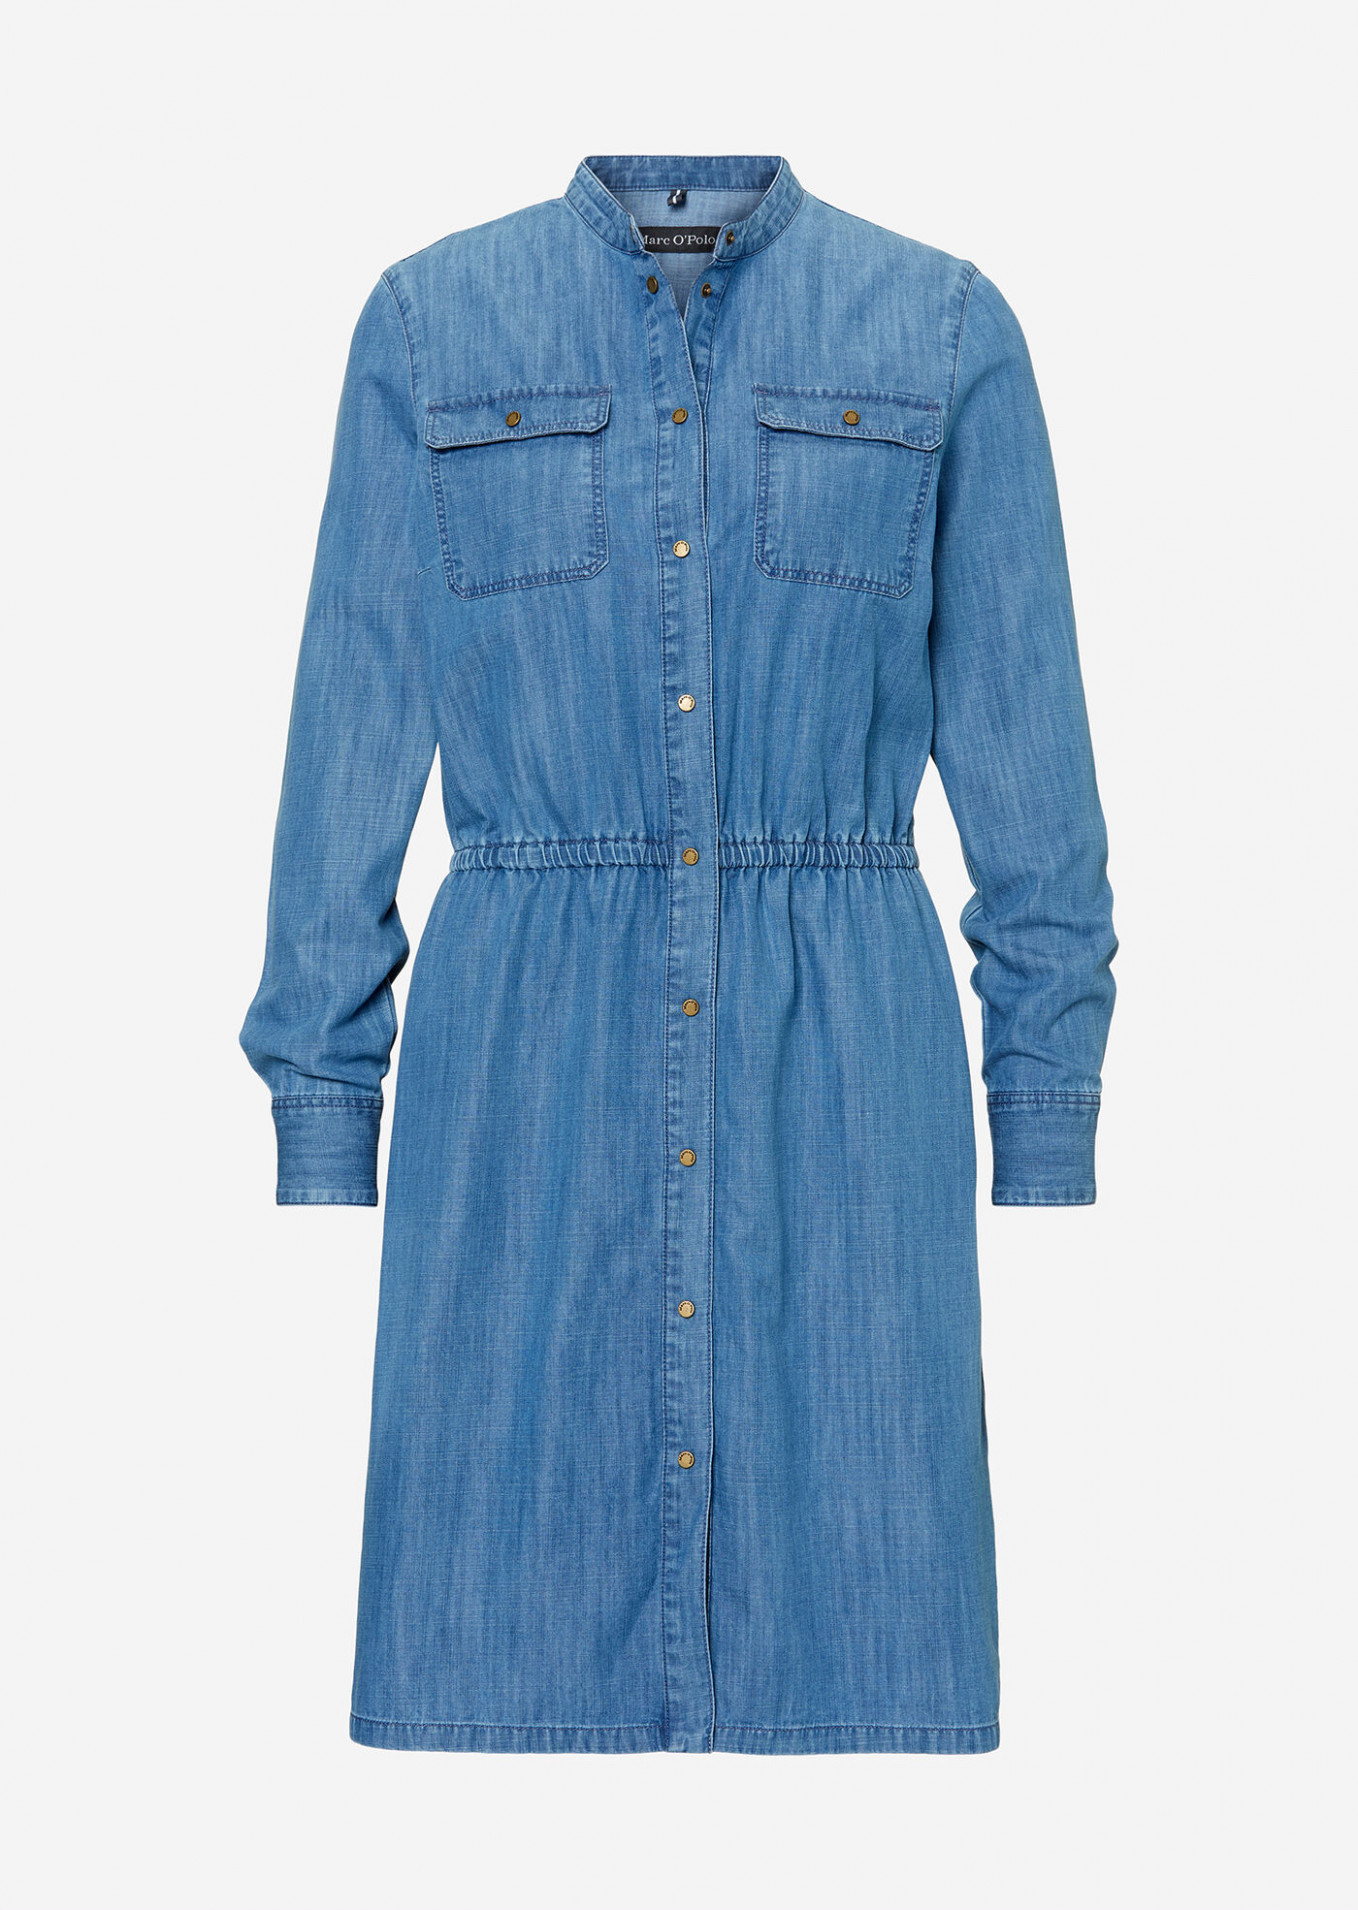 denim dress marco polo jeanskleid